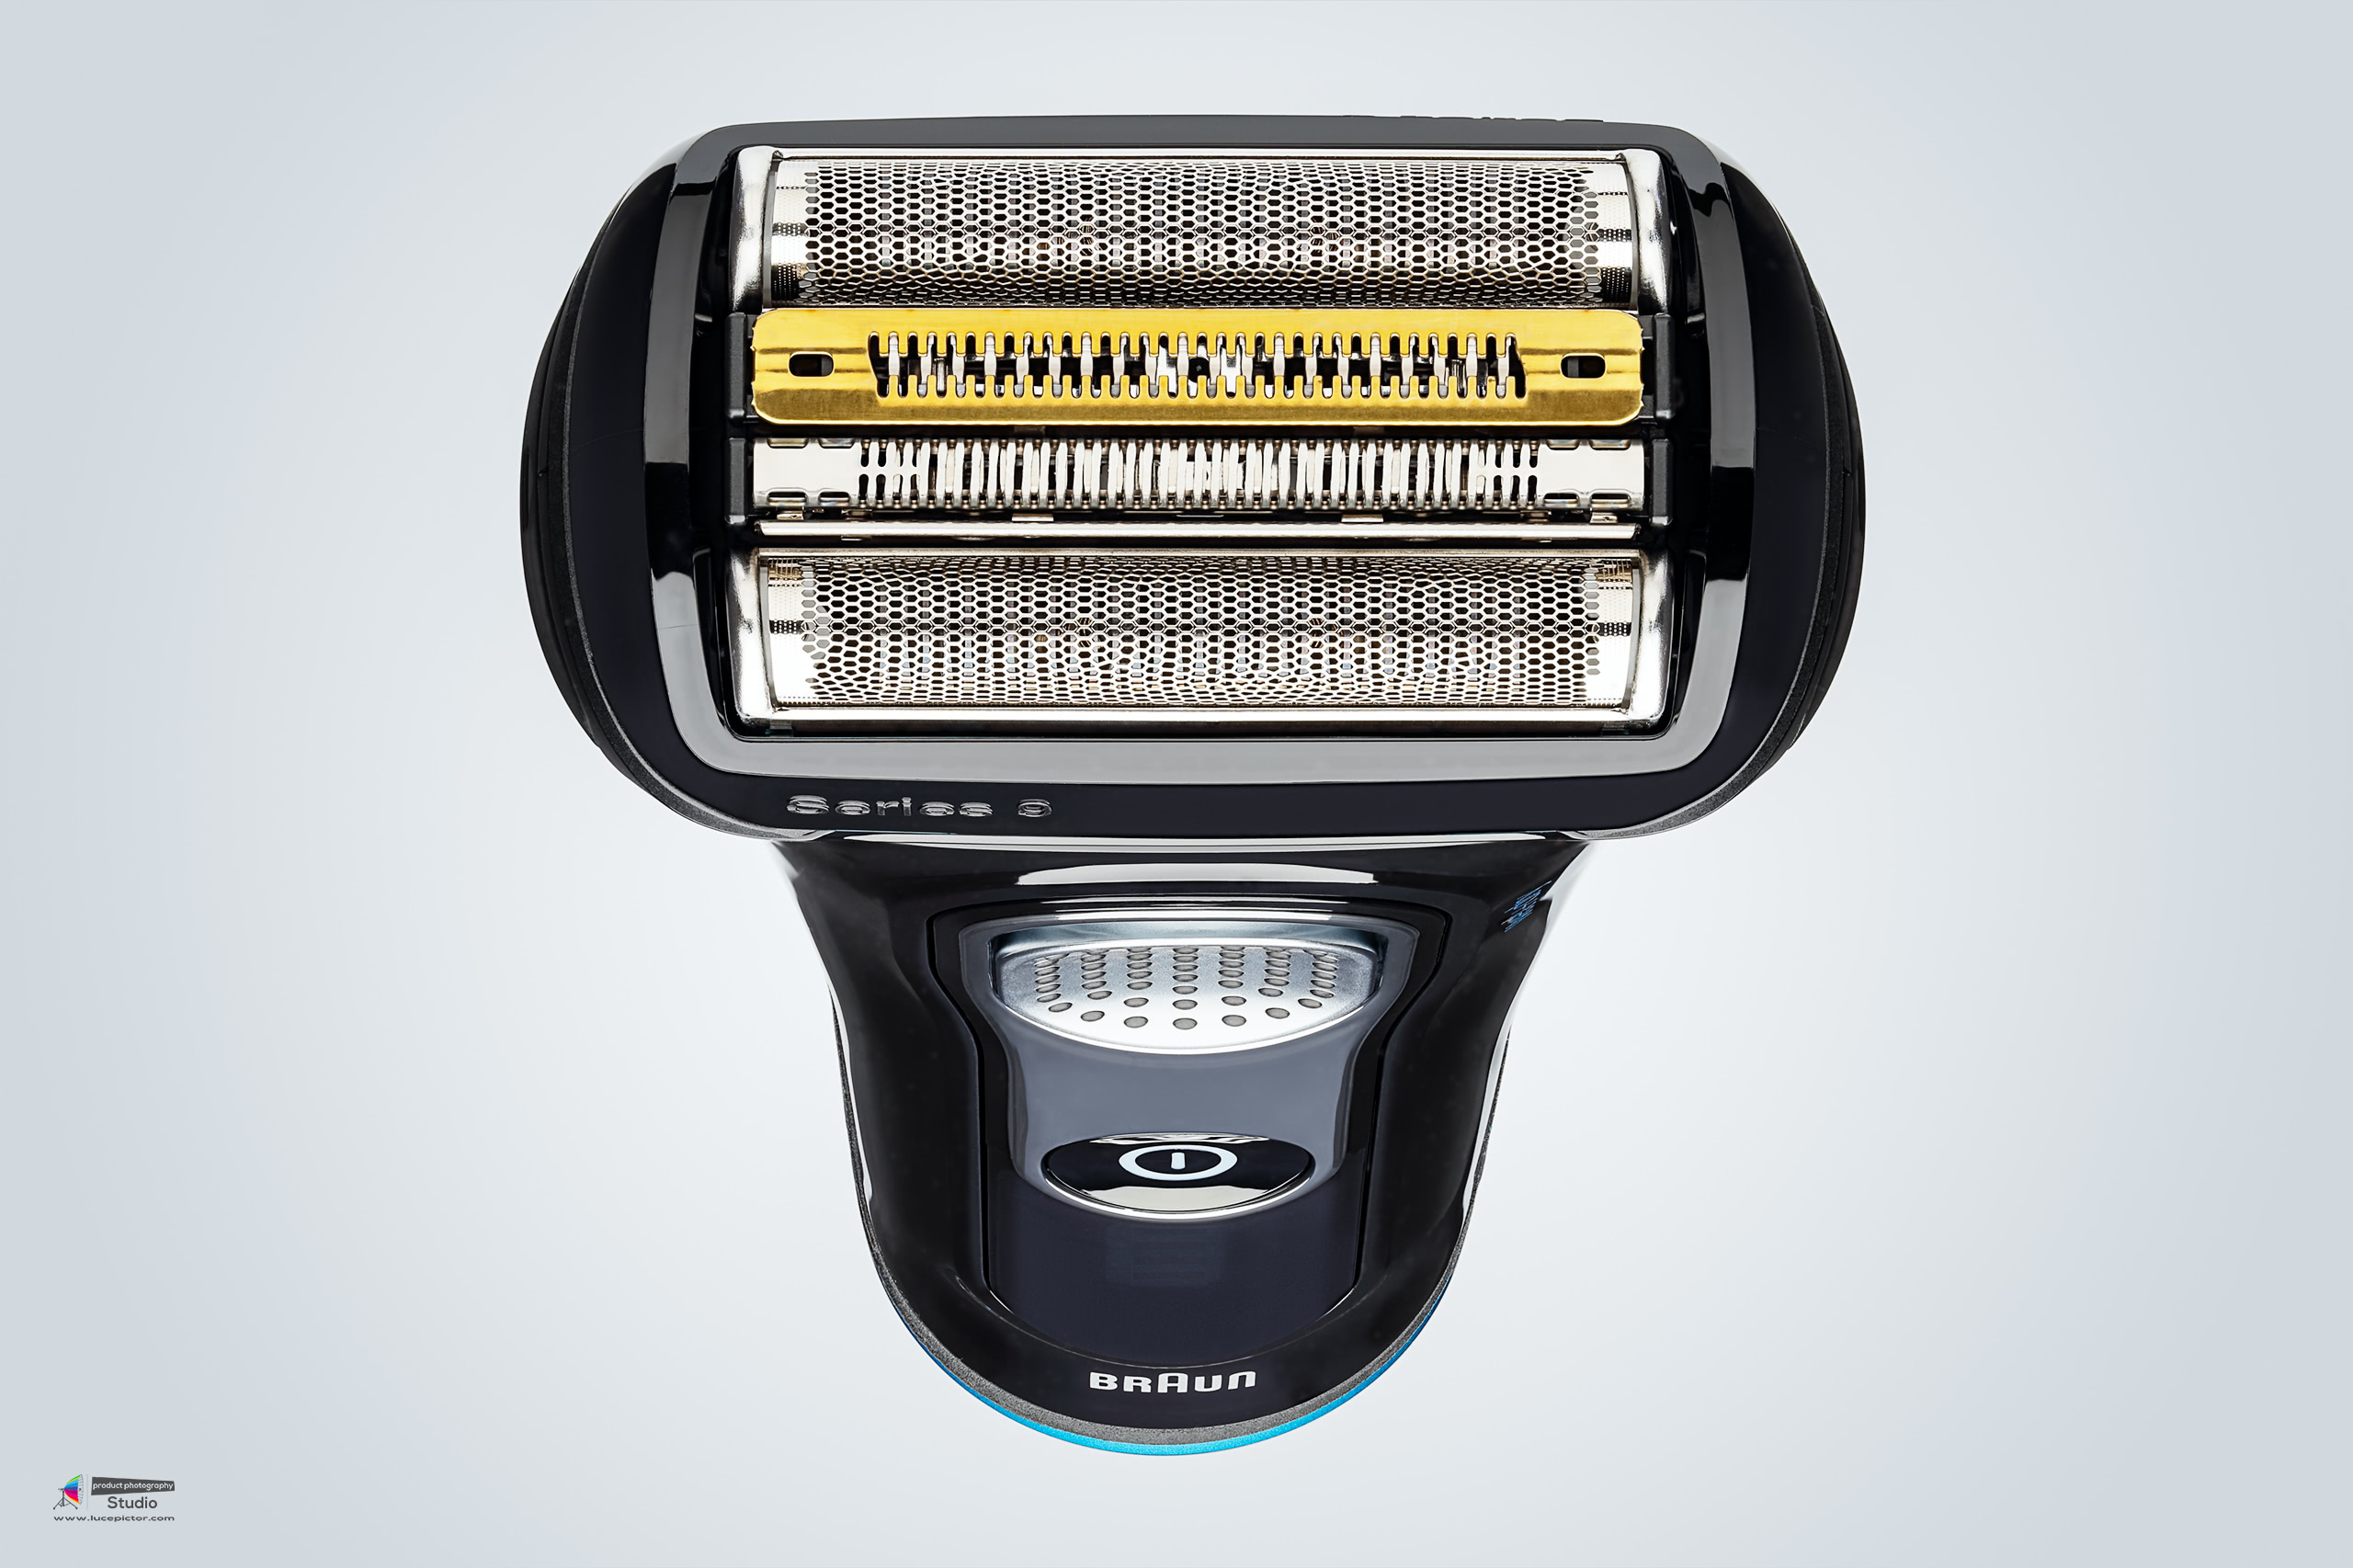 electric shaver product photography